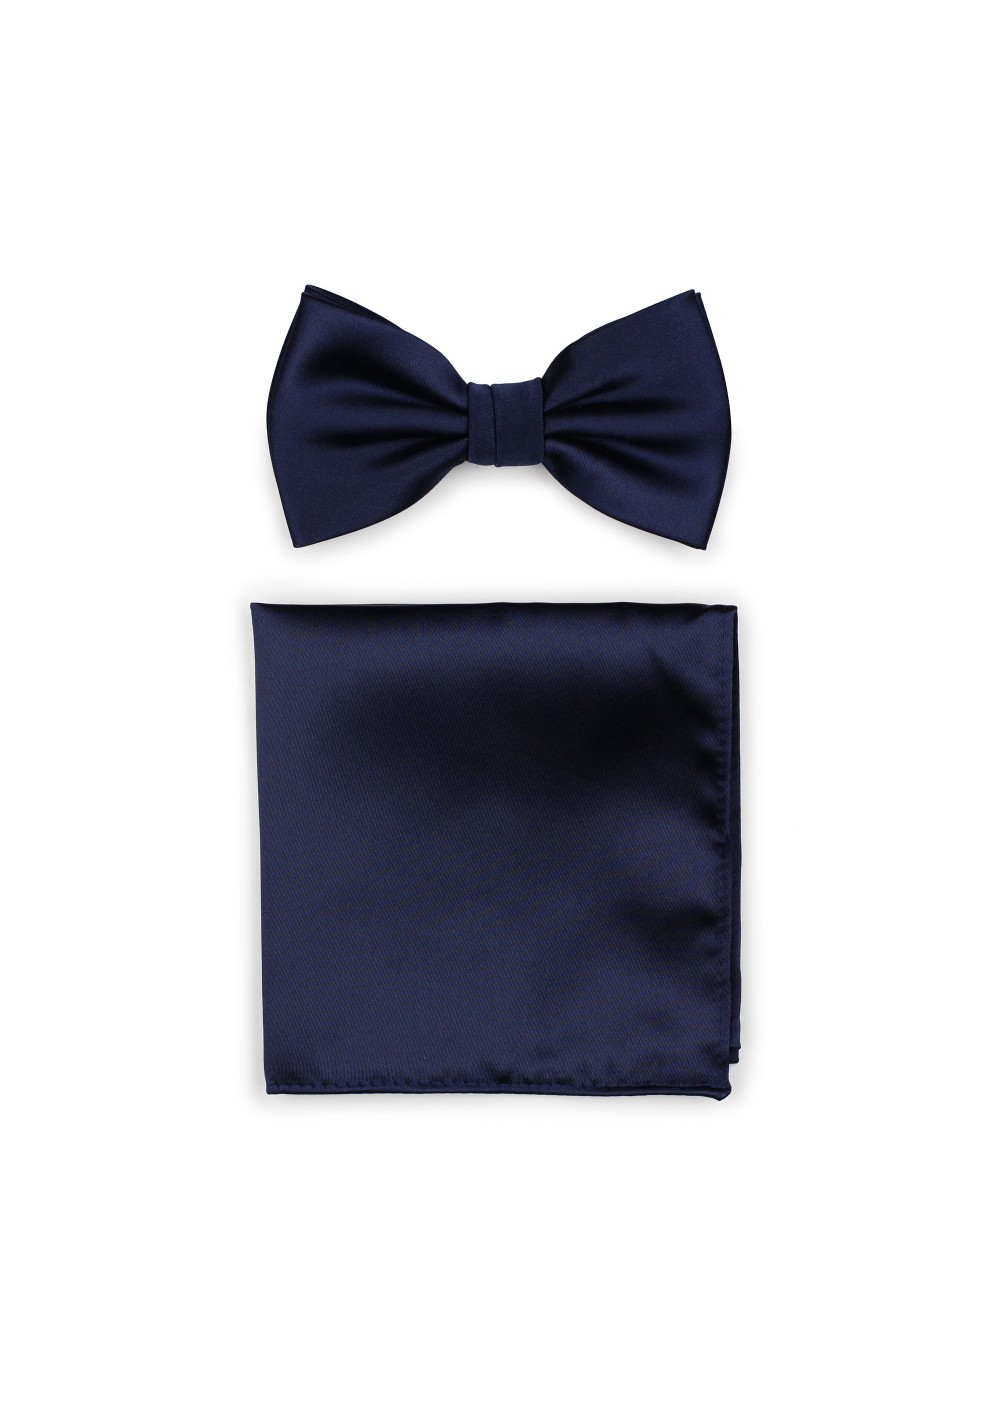 Classic Navy Bow Tie and Hanky Set